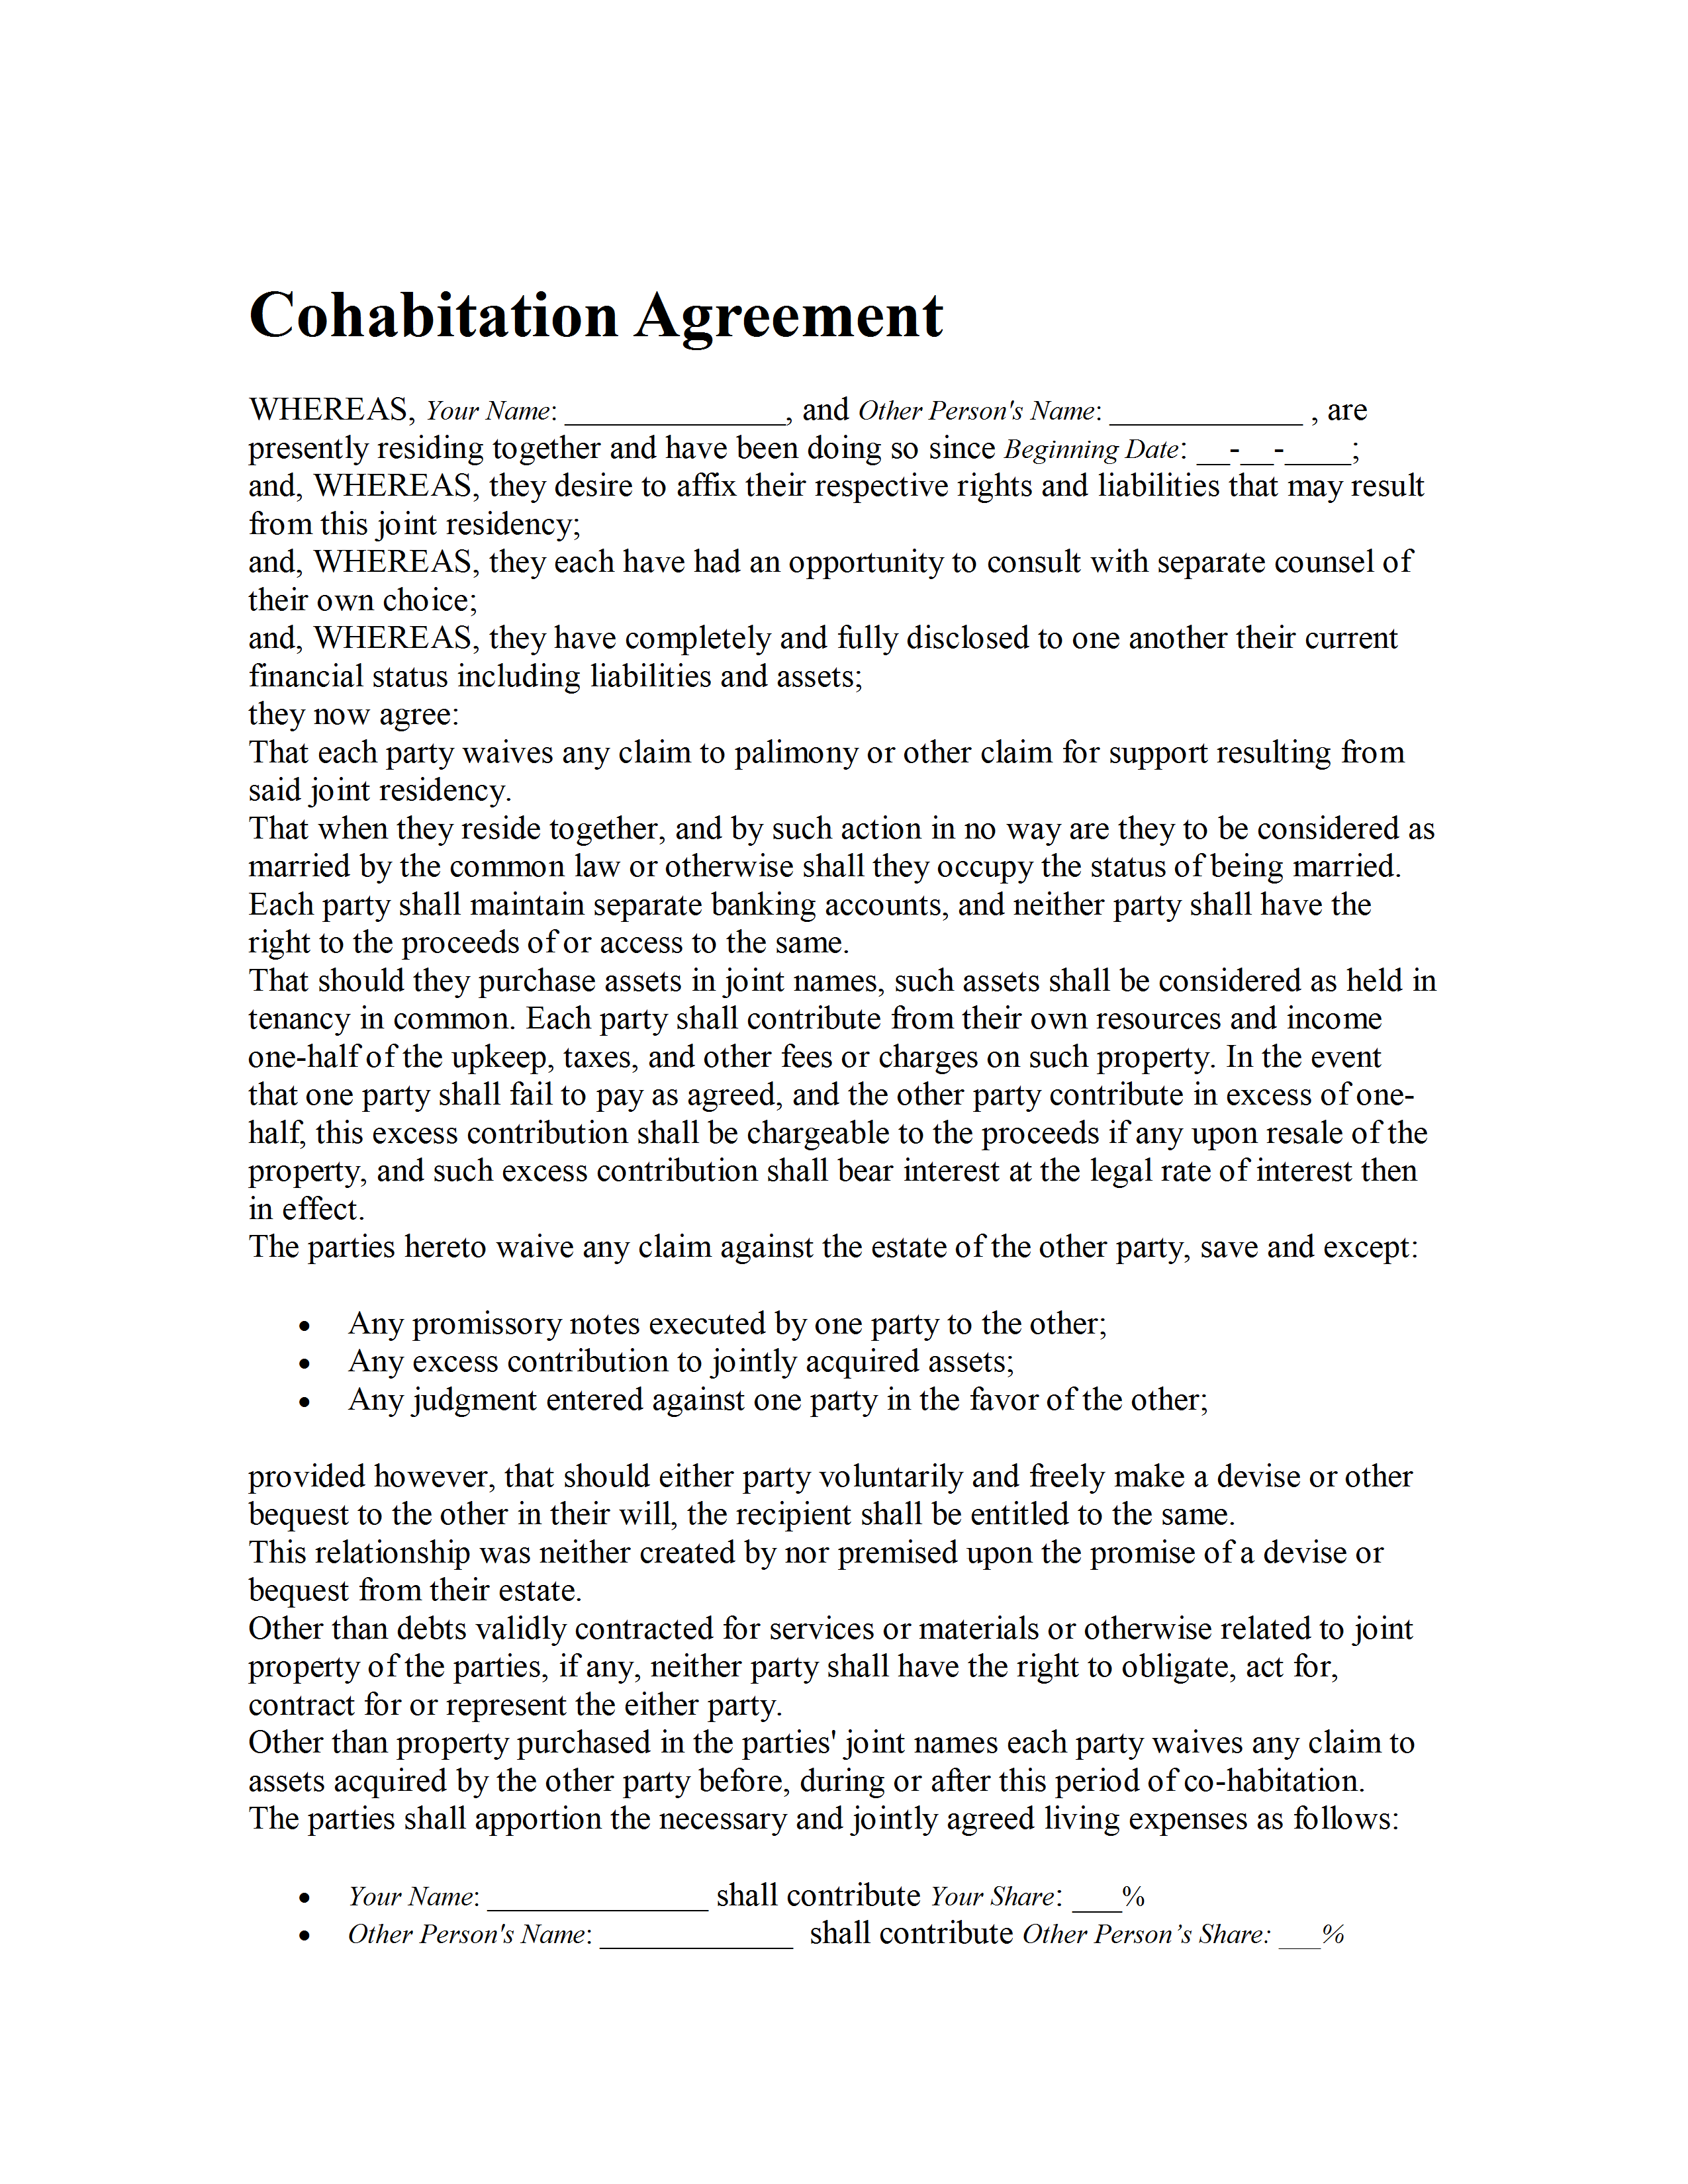 Sample Cohabitation Agreement | Cohabitation Agreement Template